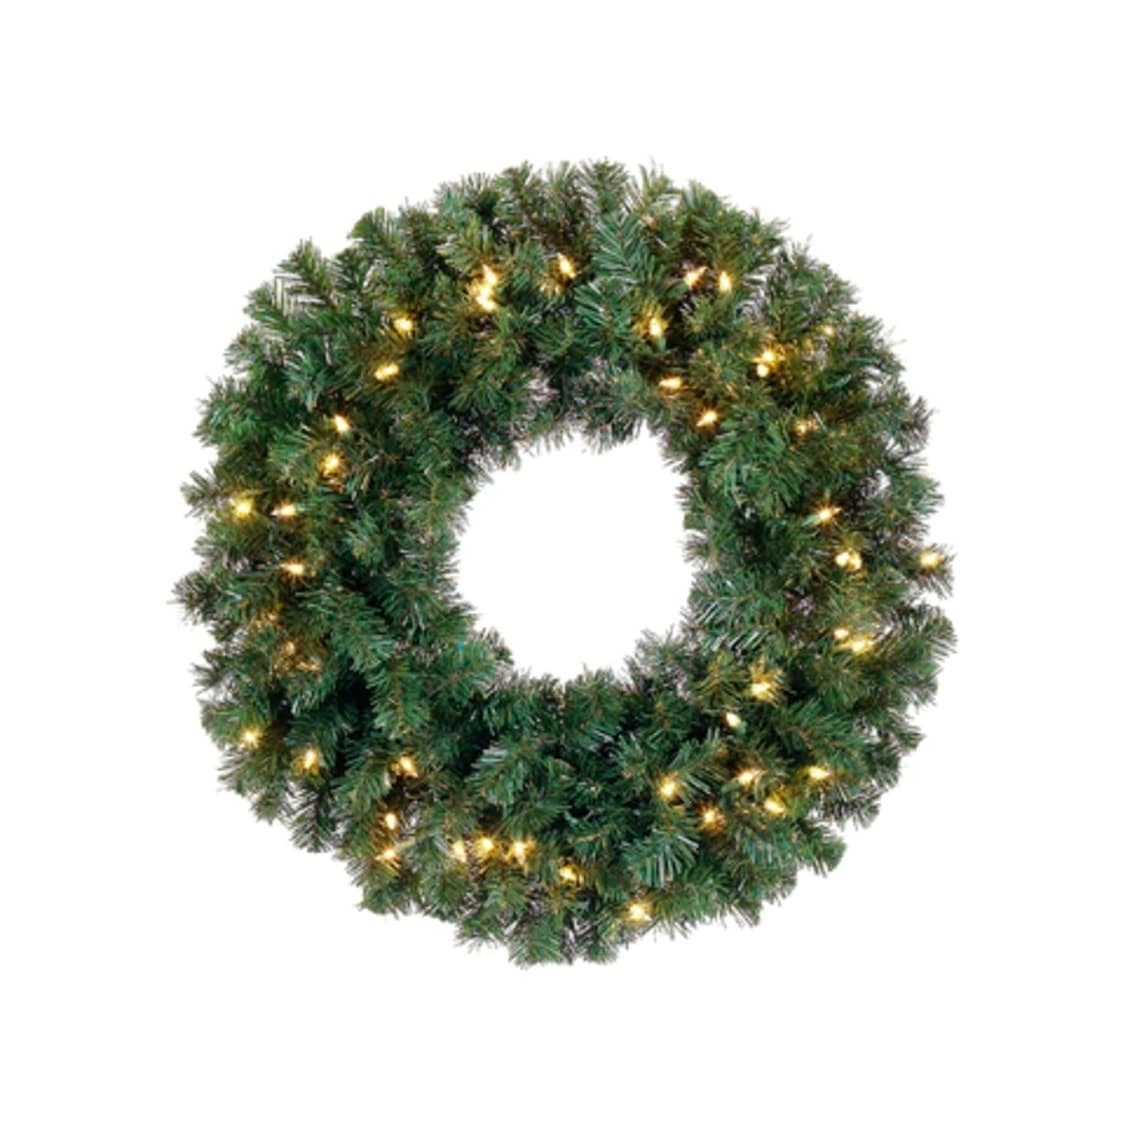 16 Pre Lit Deluxe Windsor Pine Artificial Christmas Wreath Clear Lights Overstock 16990631